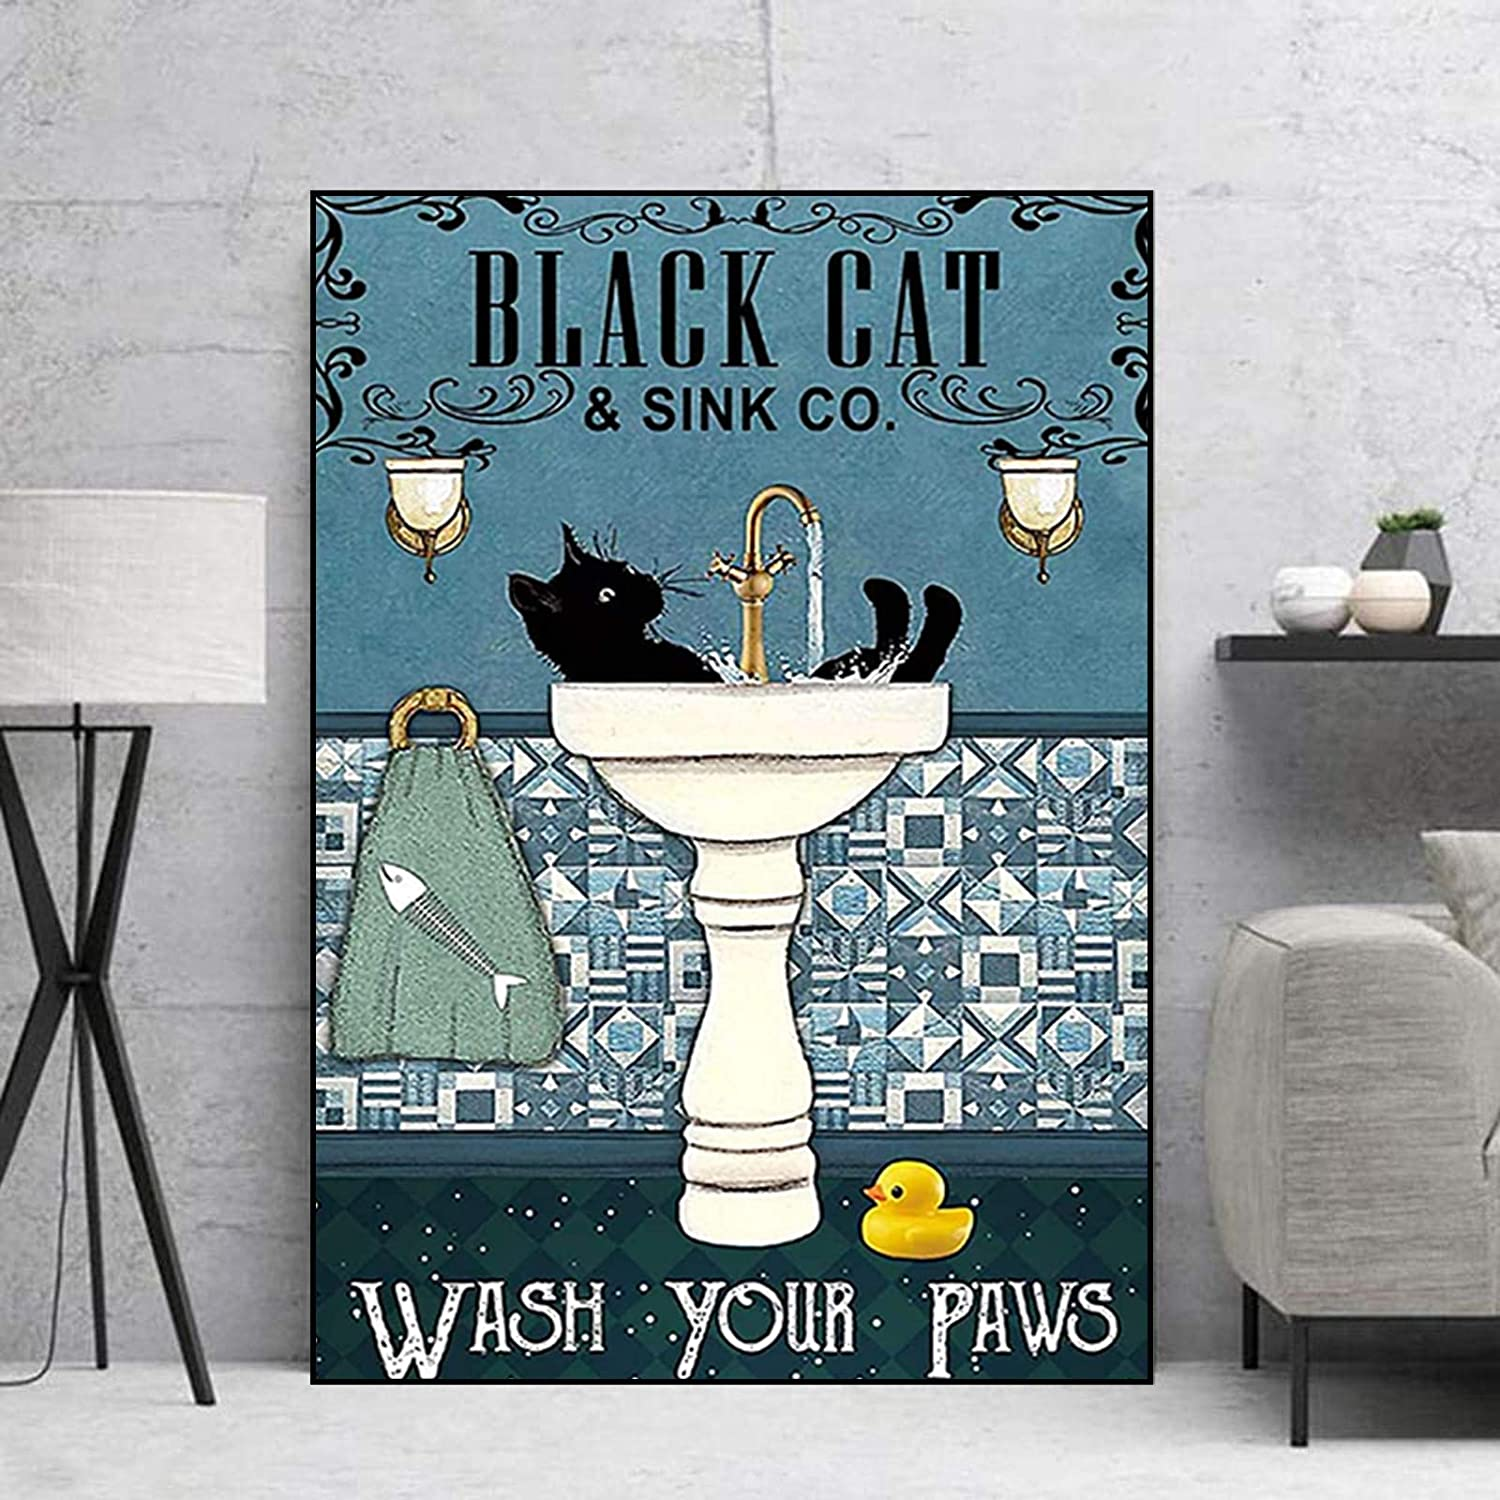 Black Cat Poster Wash Your Paws Poster Bathroom Funny Canvas Wall Art Black Cat Funny Art Picture Black Cat Poster Wash Your Paws Canvas Poster Wall Art Home Wall Decor Vertical No Frame